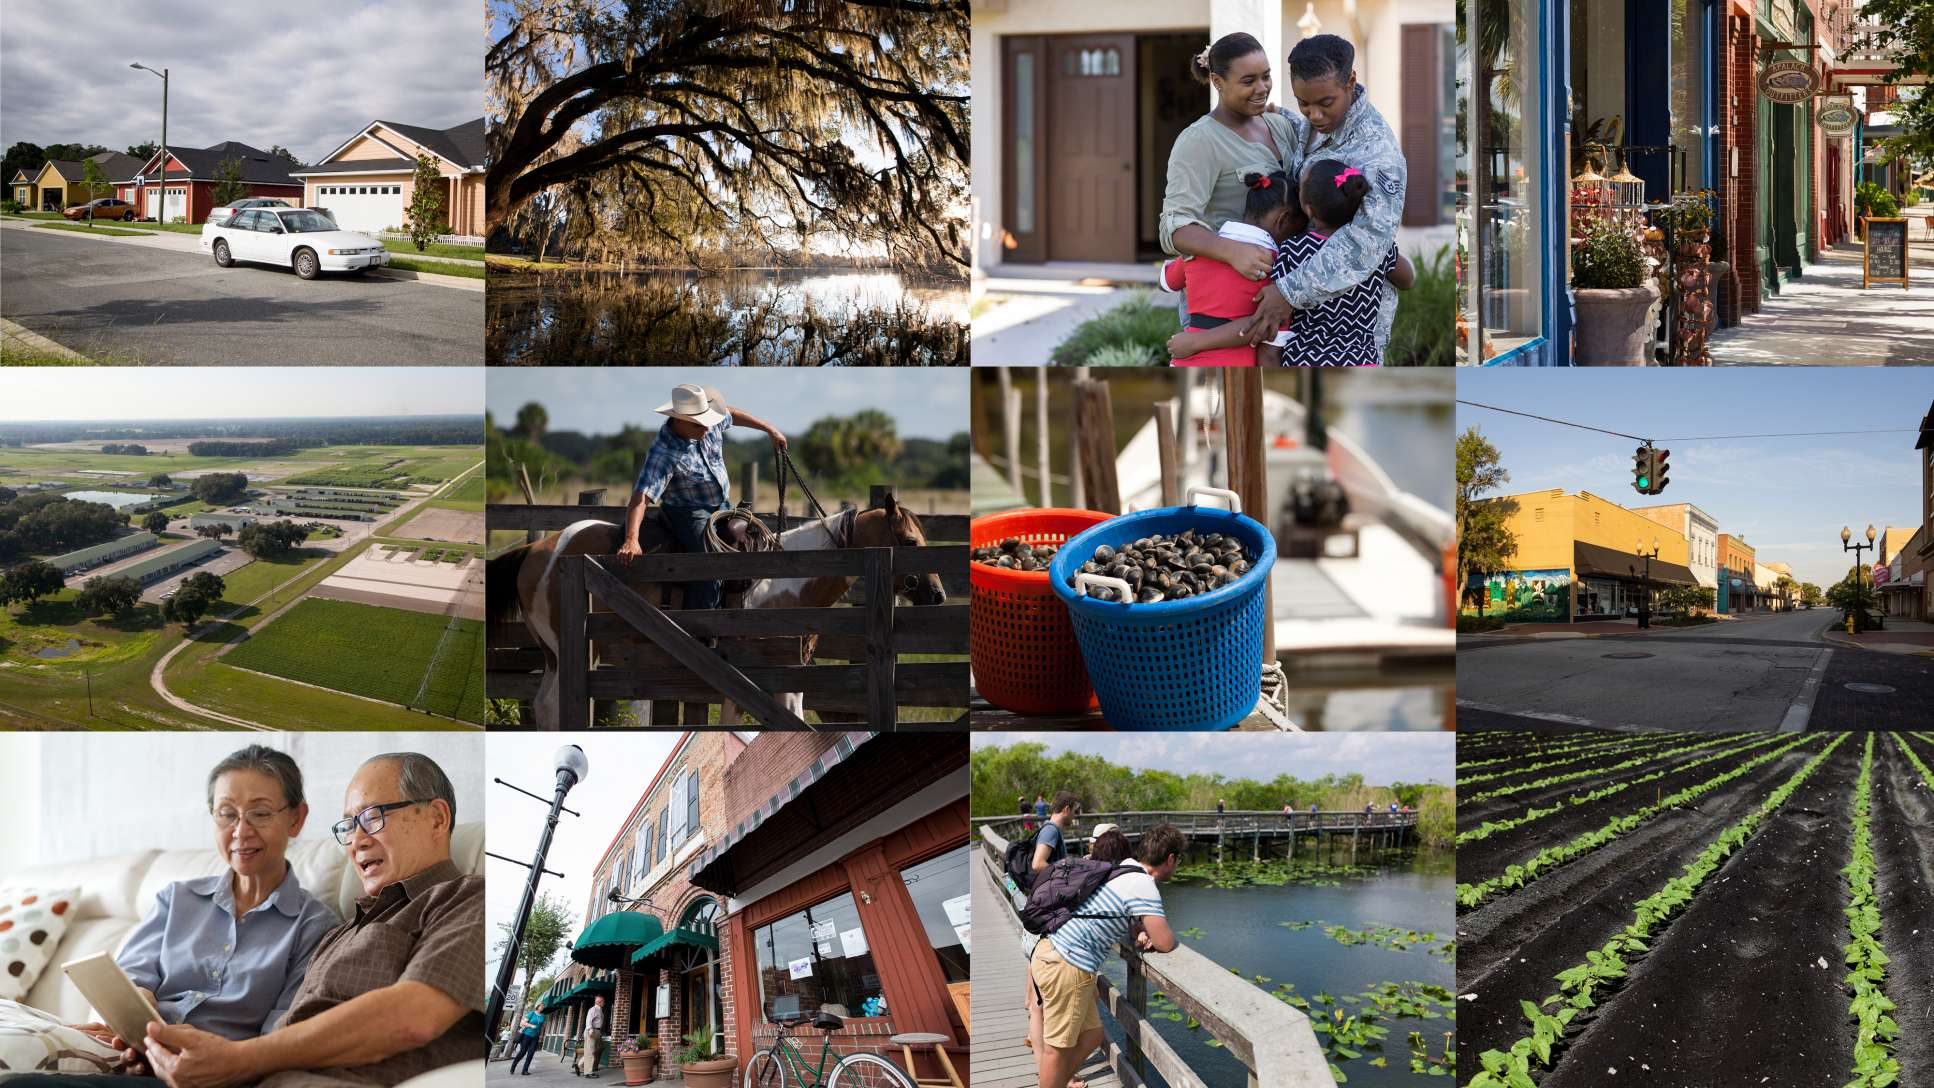 Catchment collage